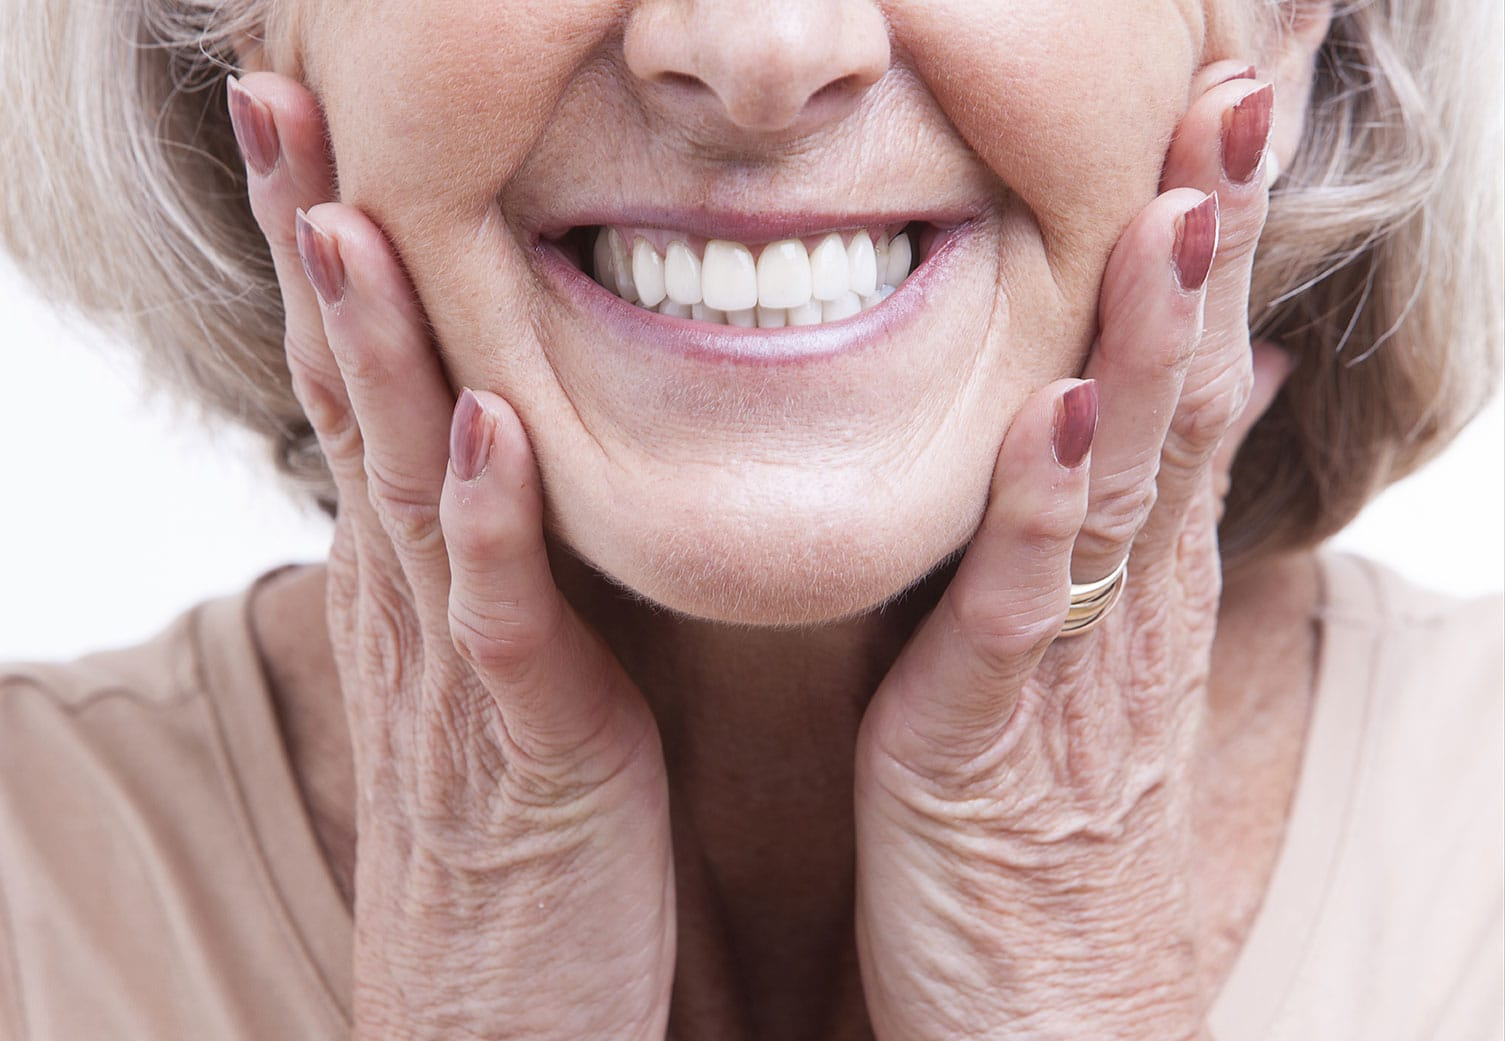 An older woman smiles, showing off her healthy and white teeth.